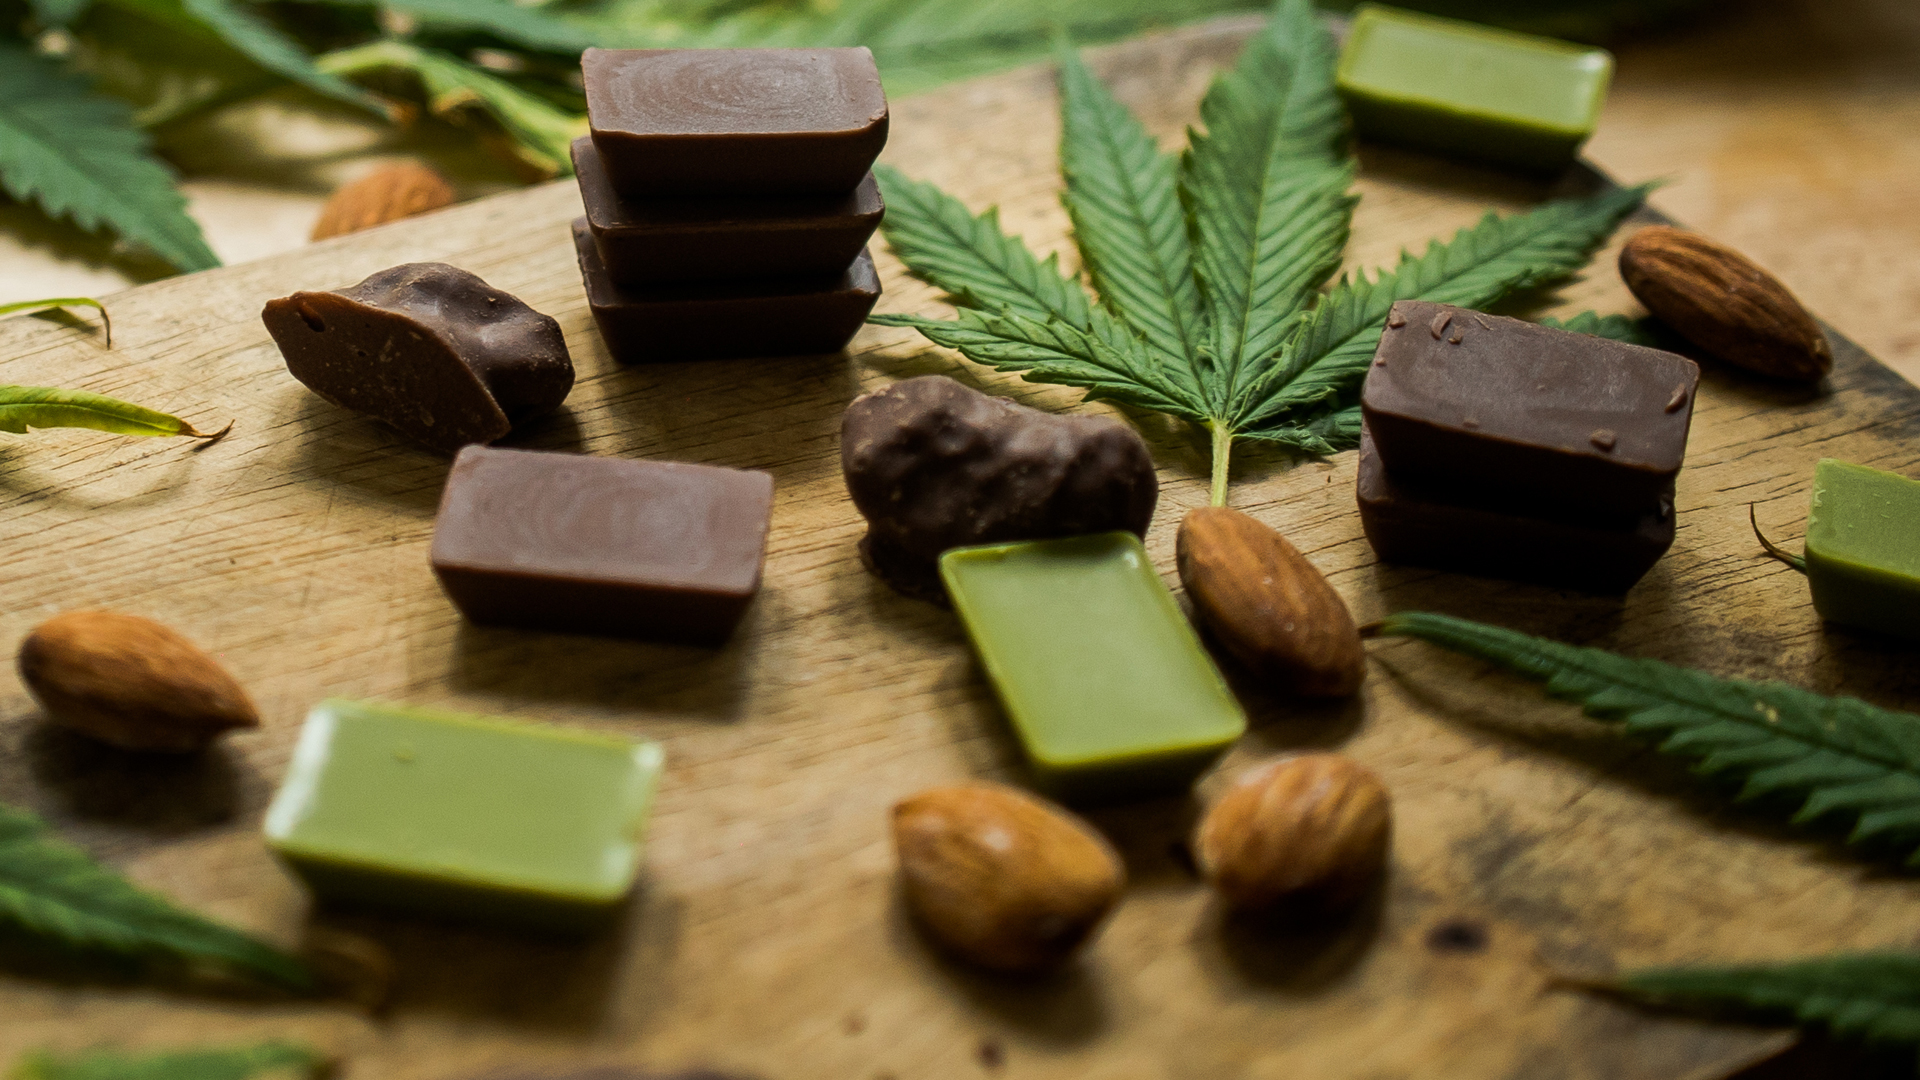 Edibles: Things to Consider from a Food Safety Perspective